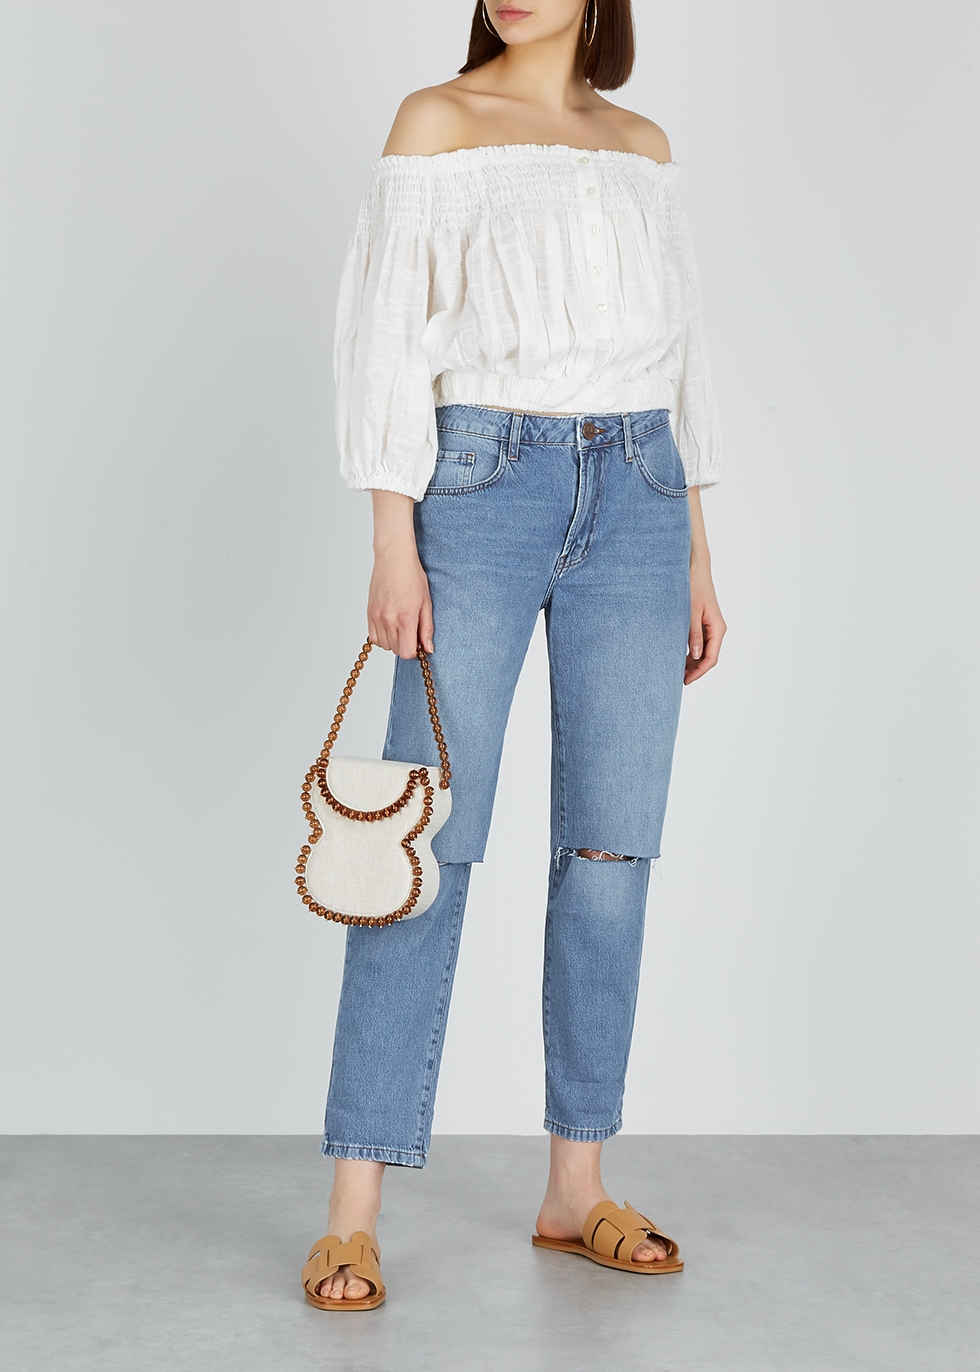 Awesome Baggies straight-leg jeans - Oneteaspoon